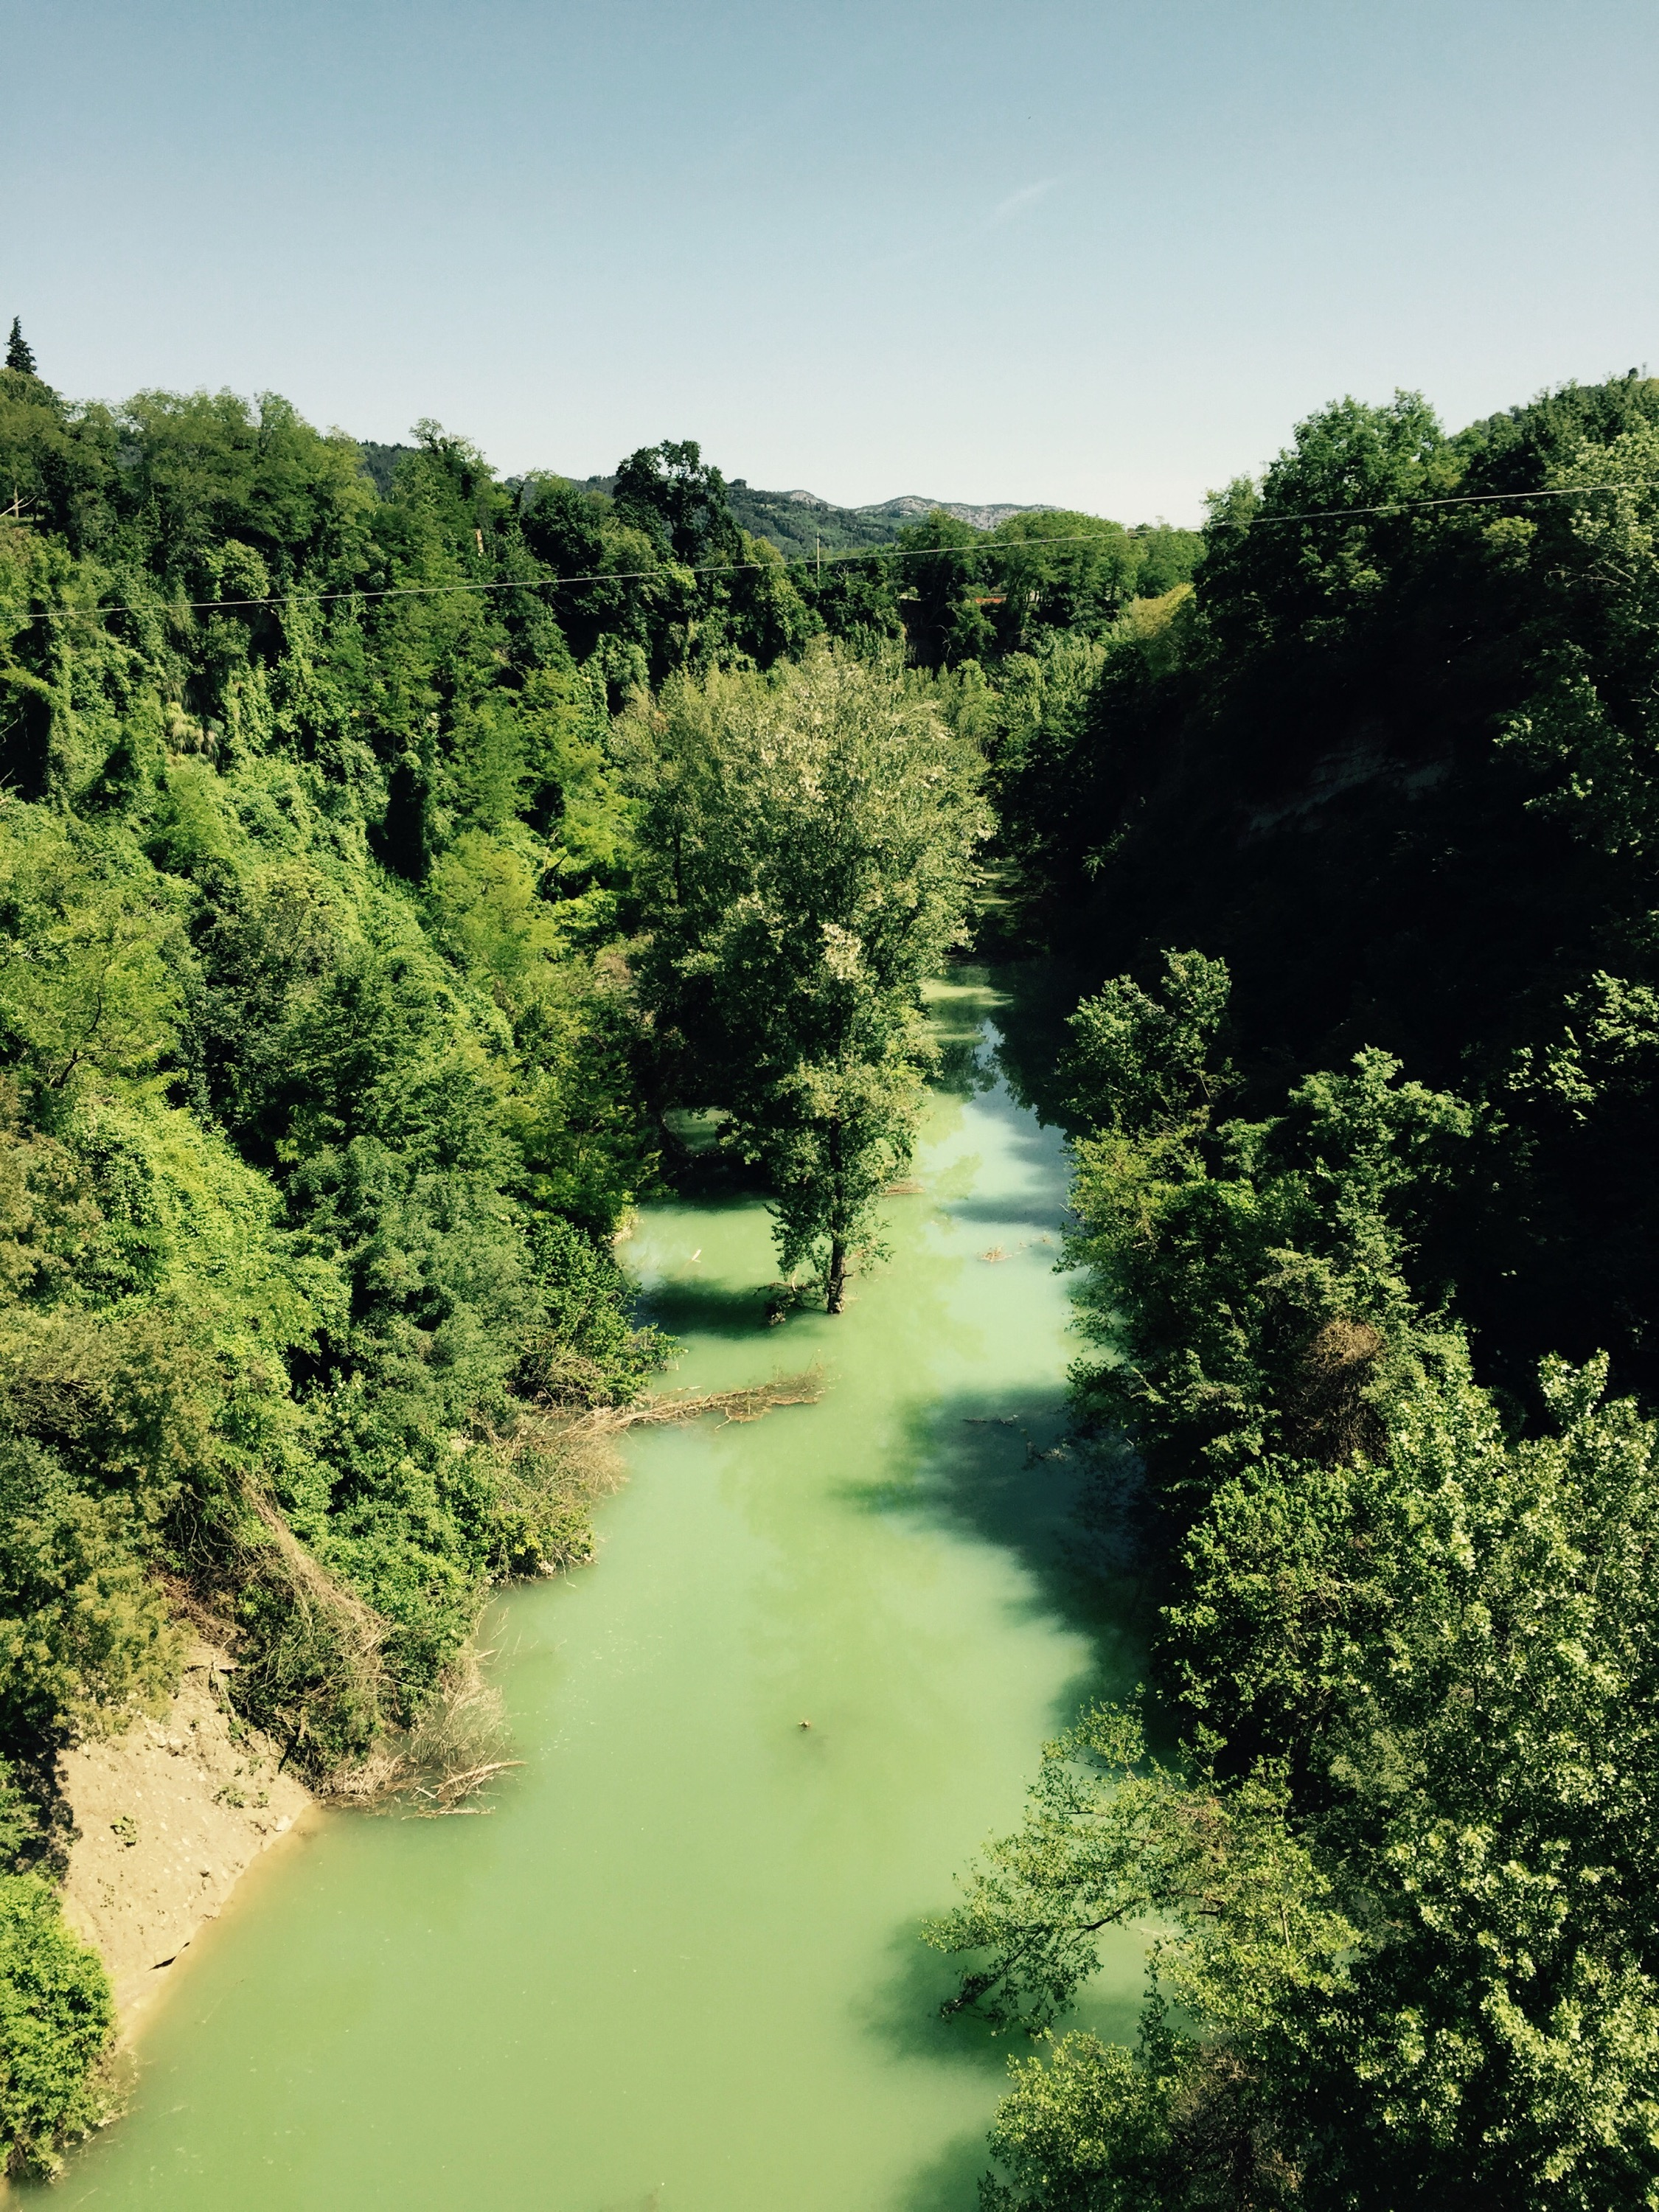 The Fiume Senio river, Italy